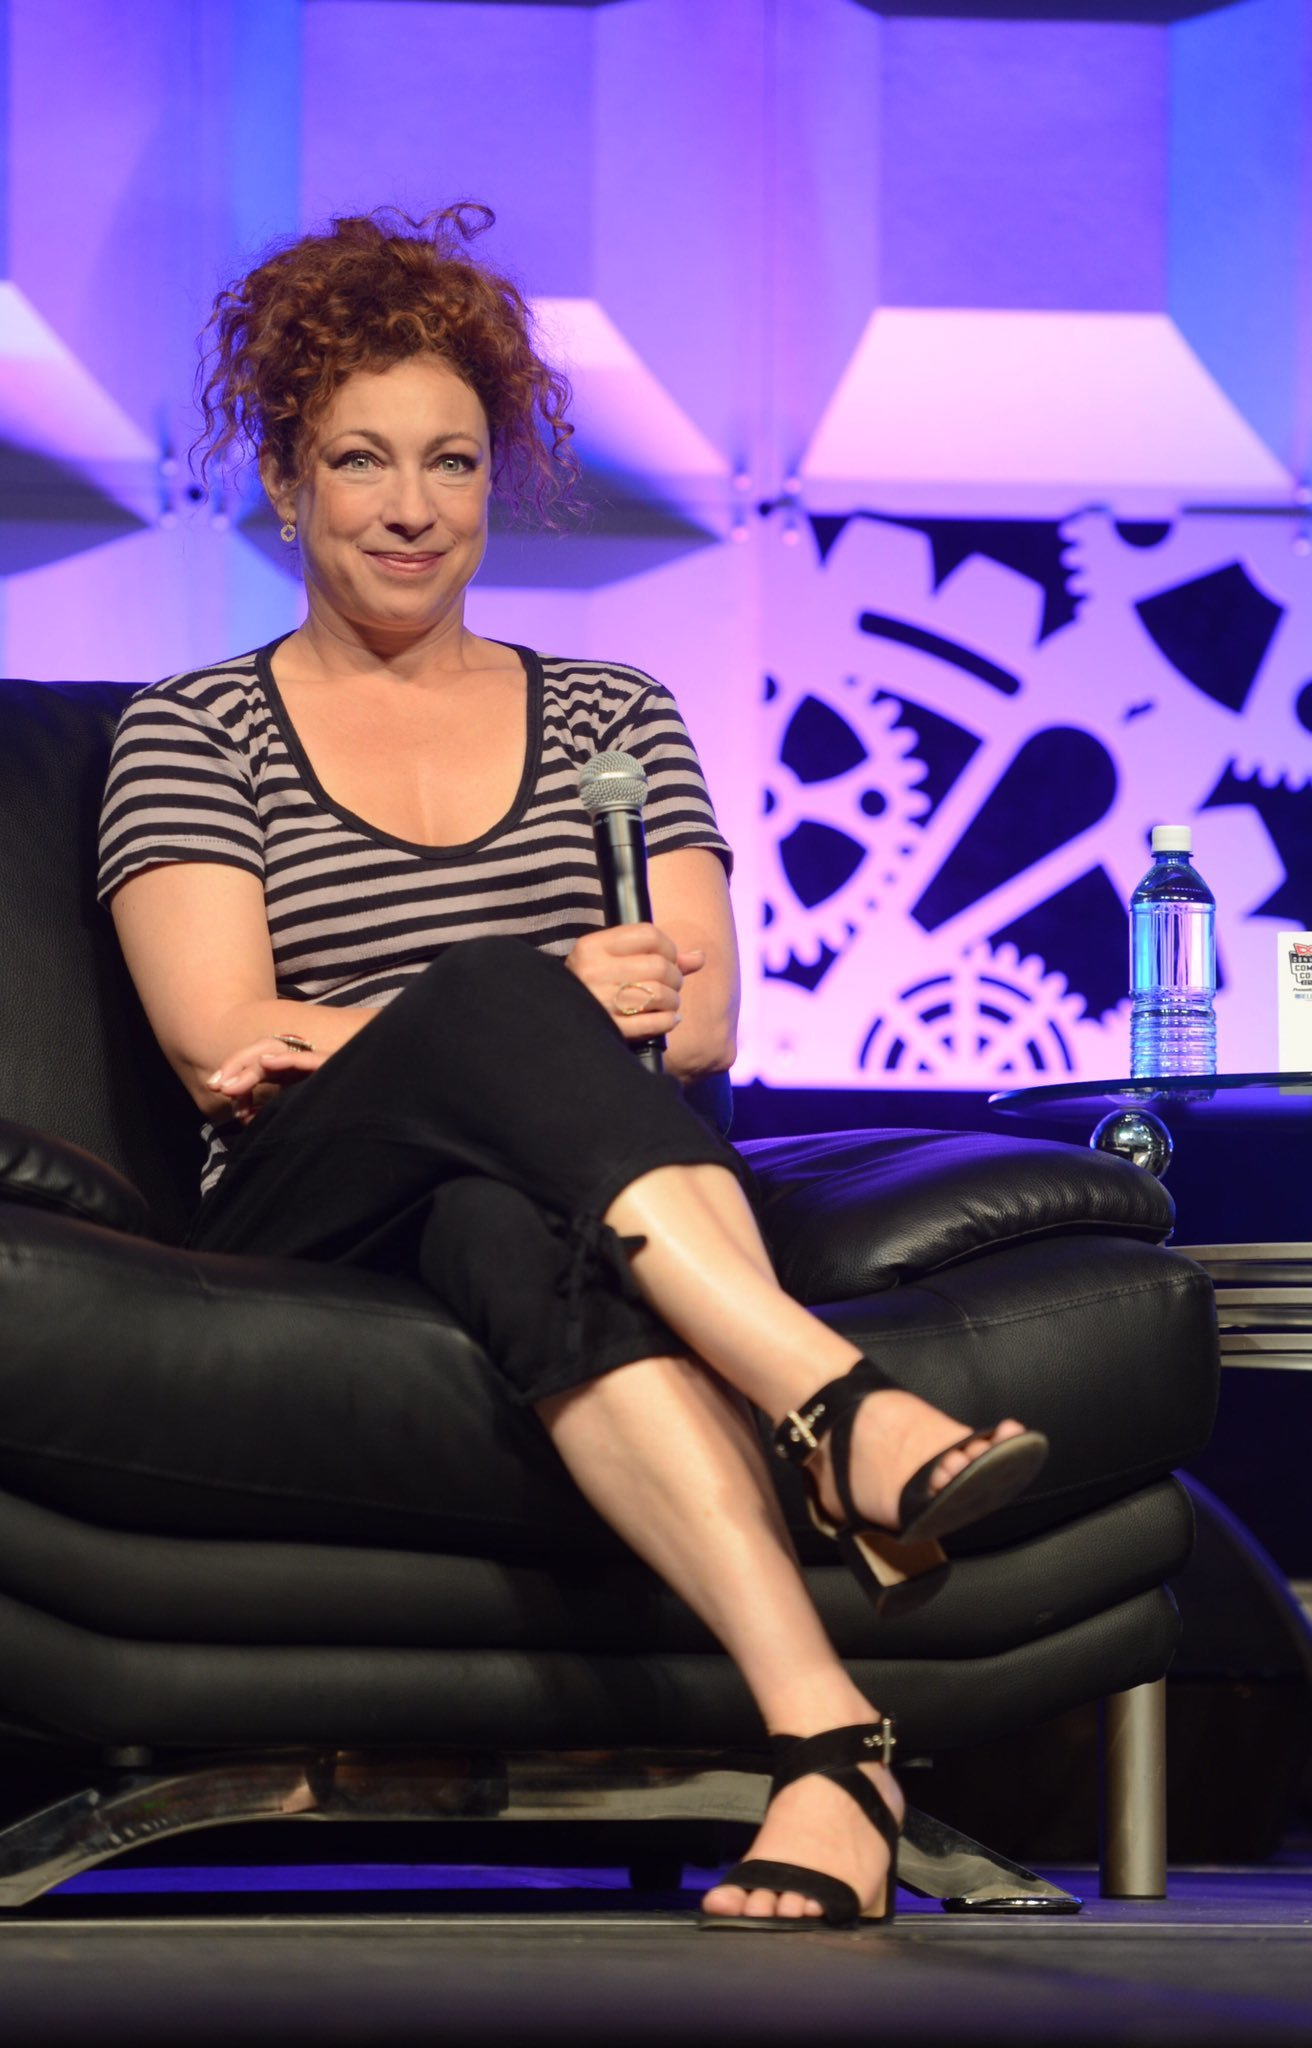 Sideboobs Feet Alex Kingston naked photo 2017